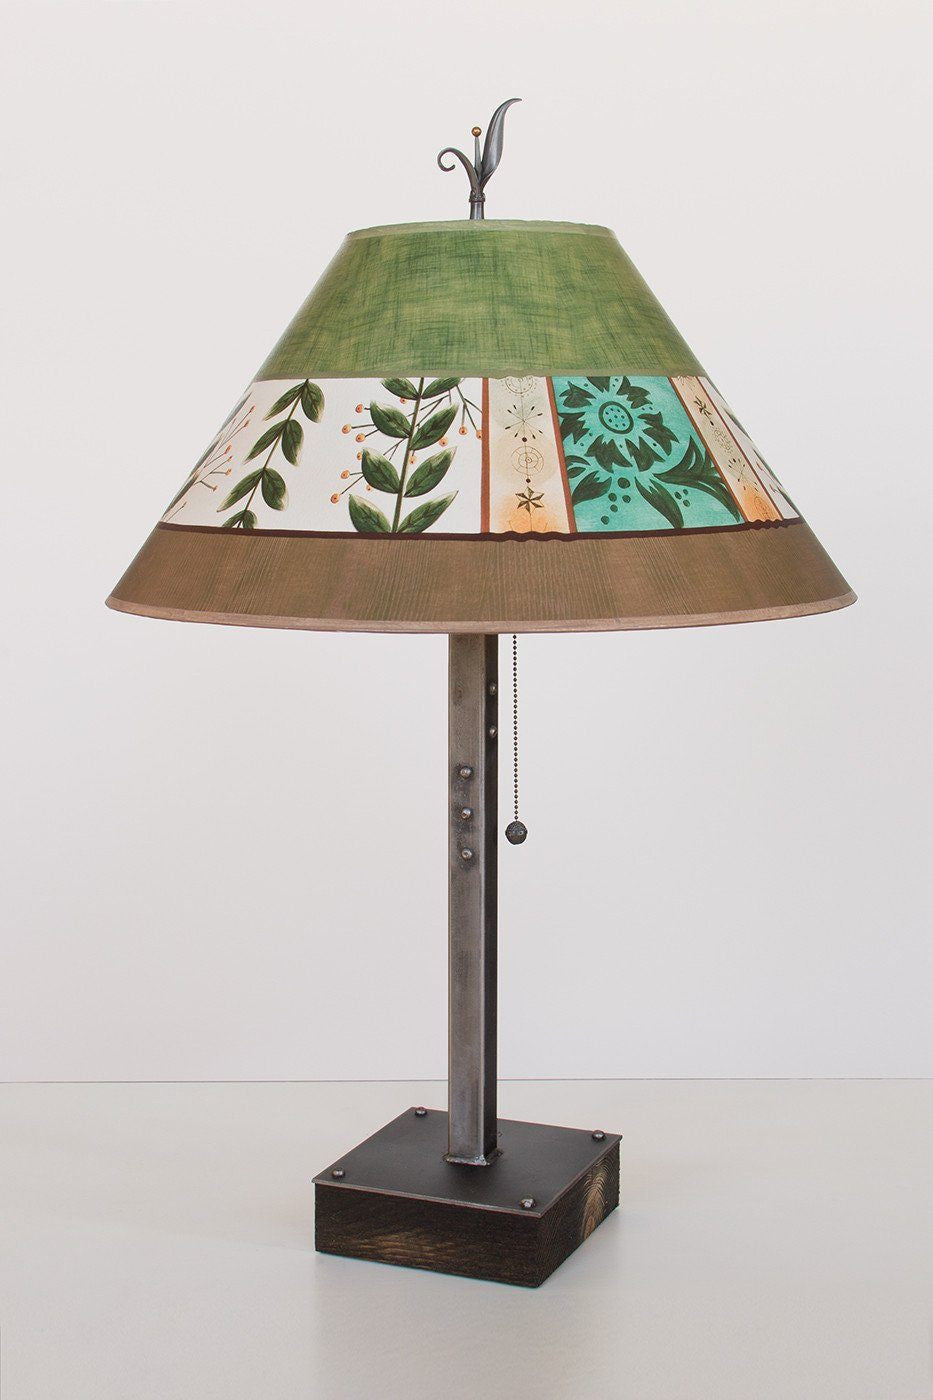 Steel Table Lamp on Wood with Large Conical Shade in Spring Medley Apple